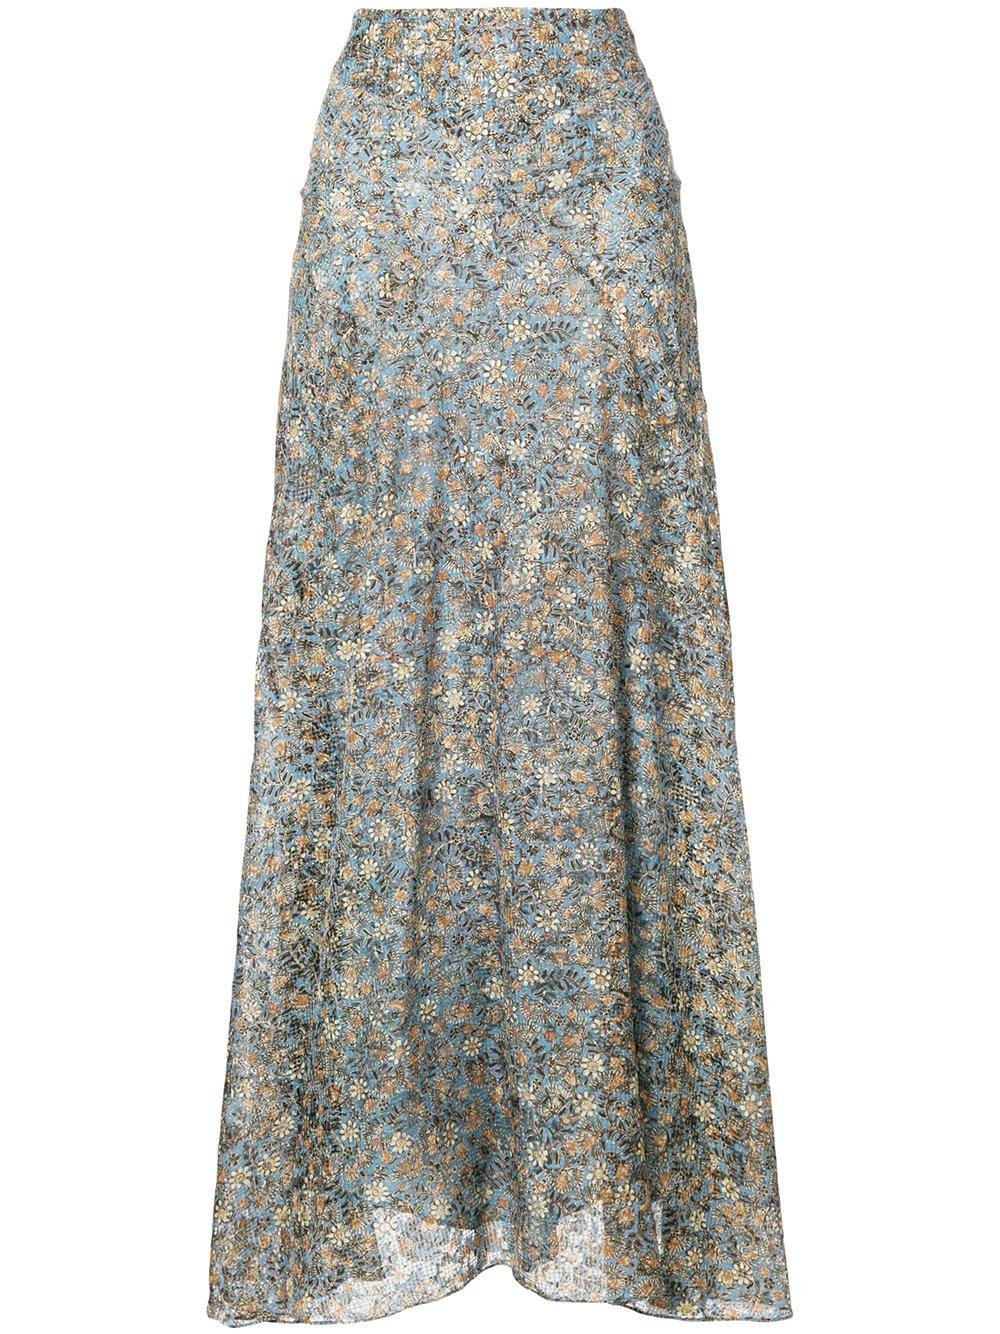 Isabel Marant Ferone Floral Print Skirt In Blue